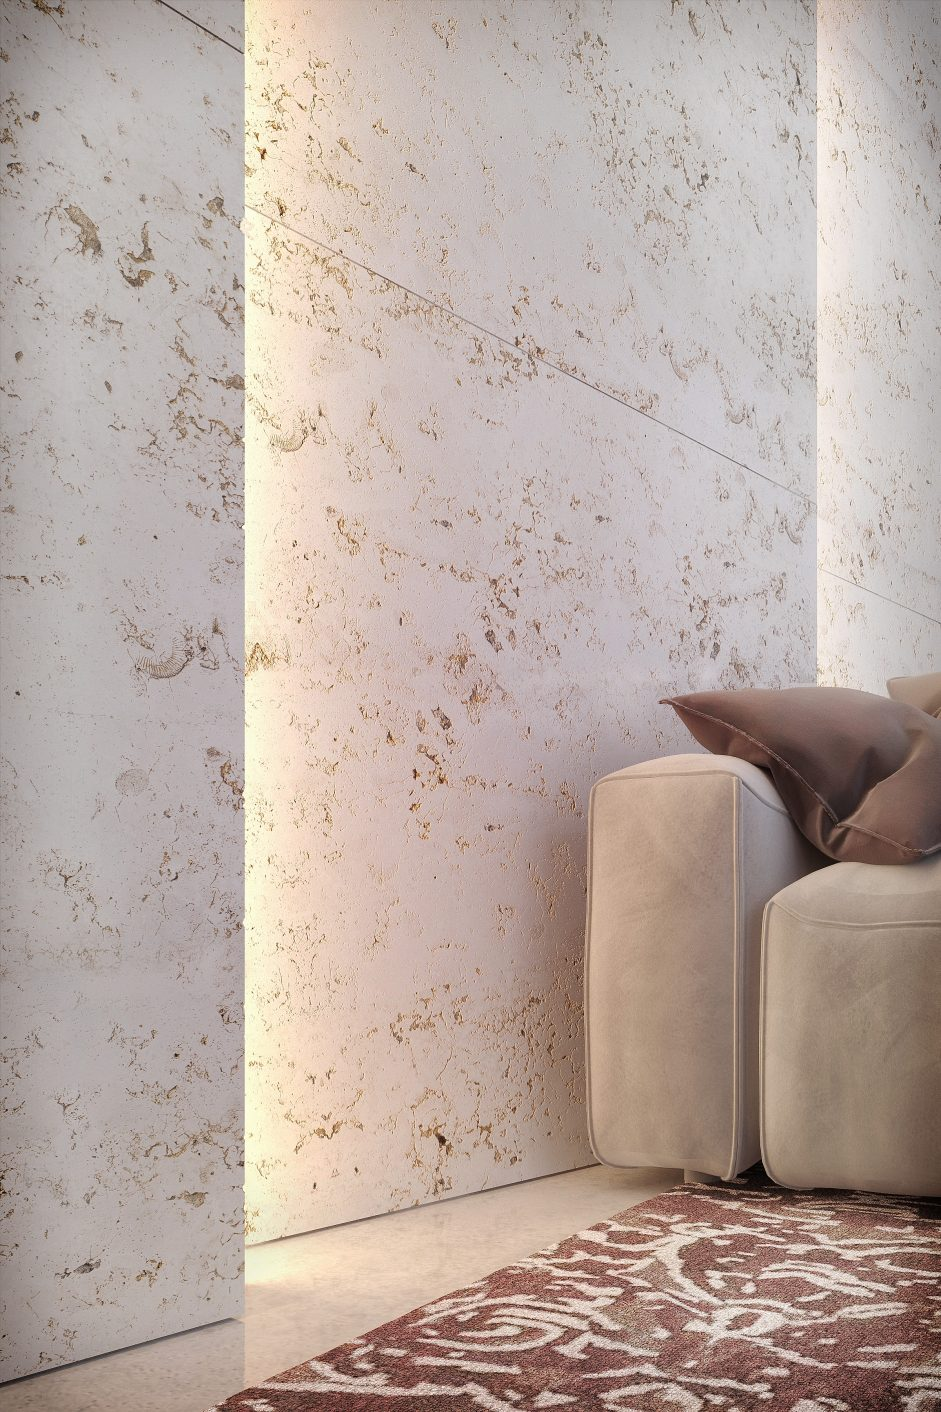 Product visualization, close up of a travertine wall